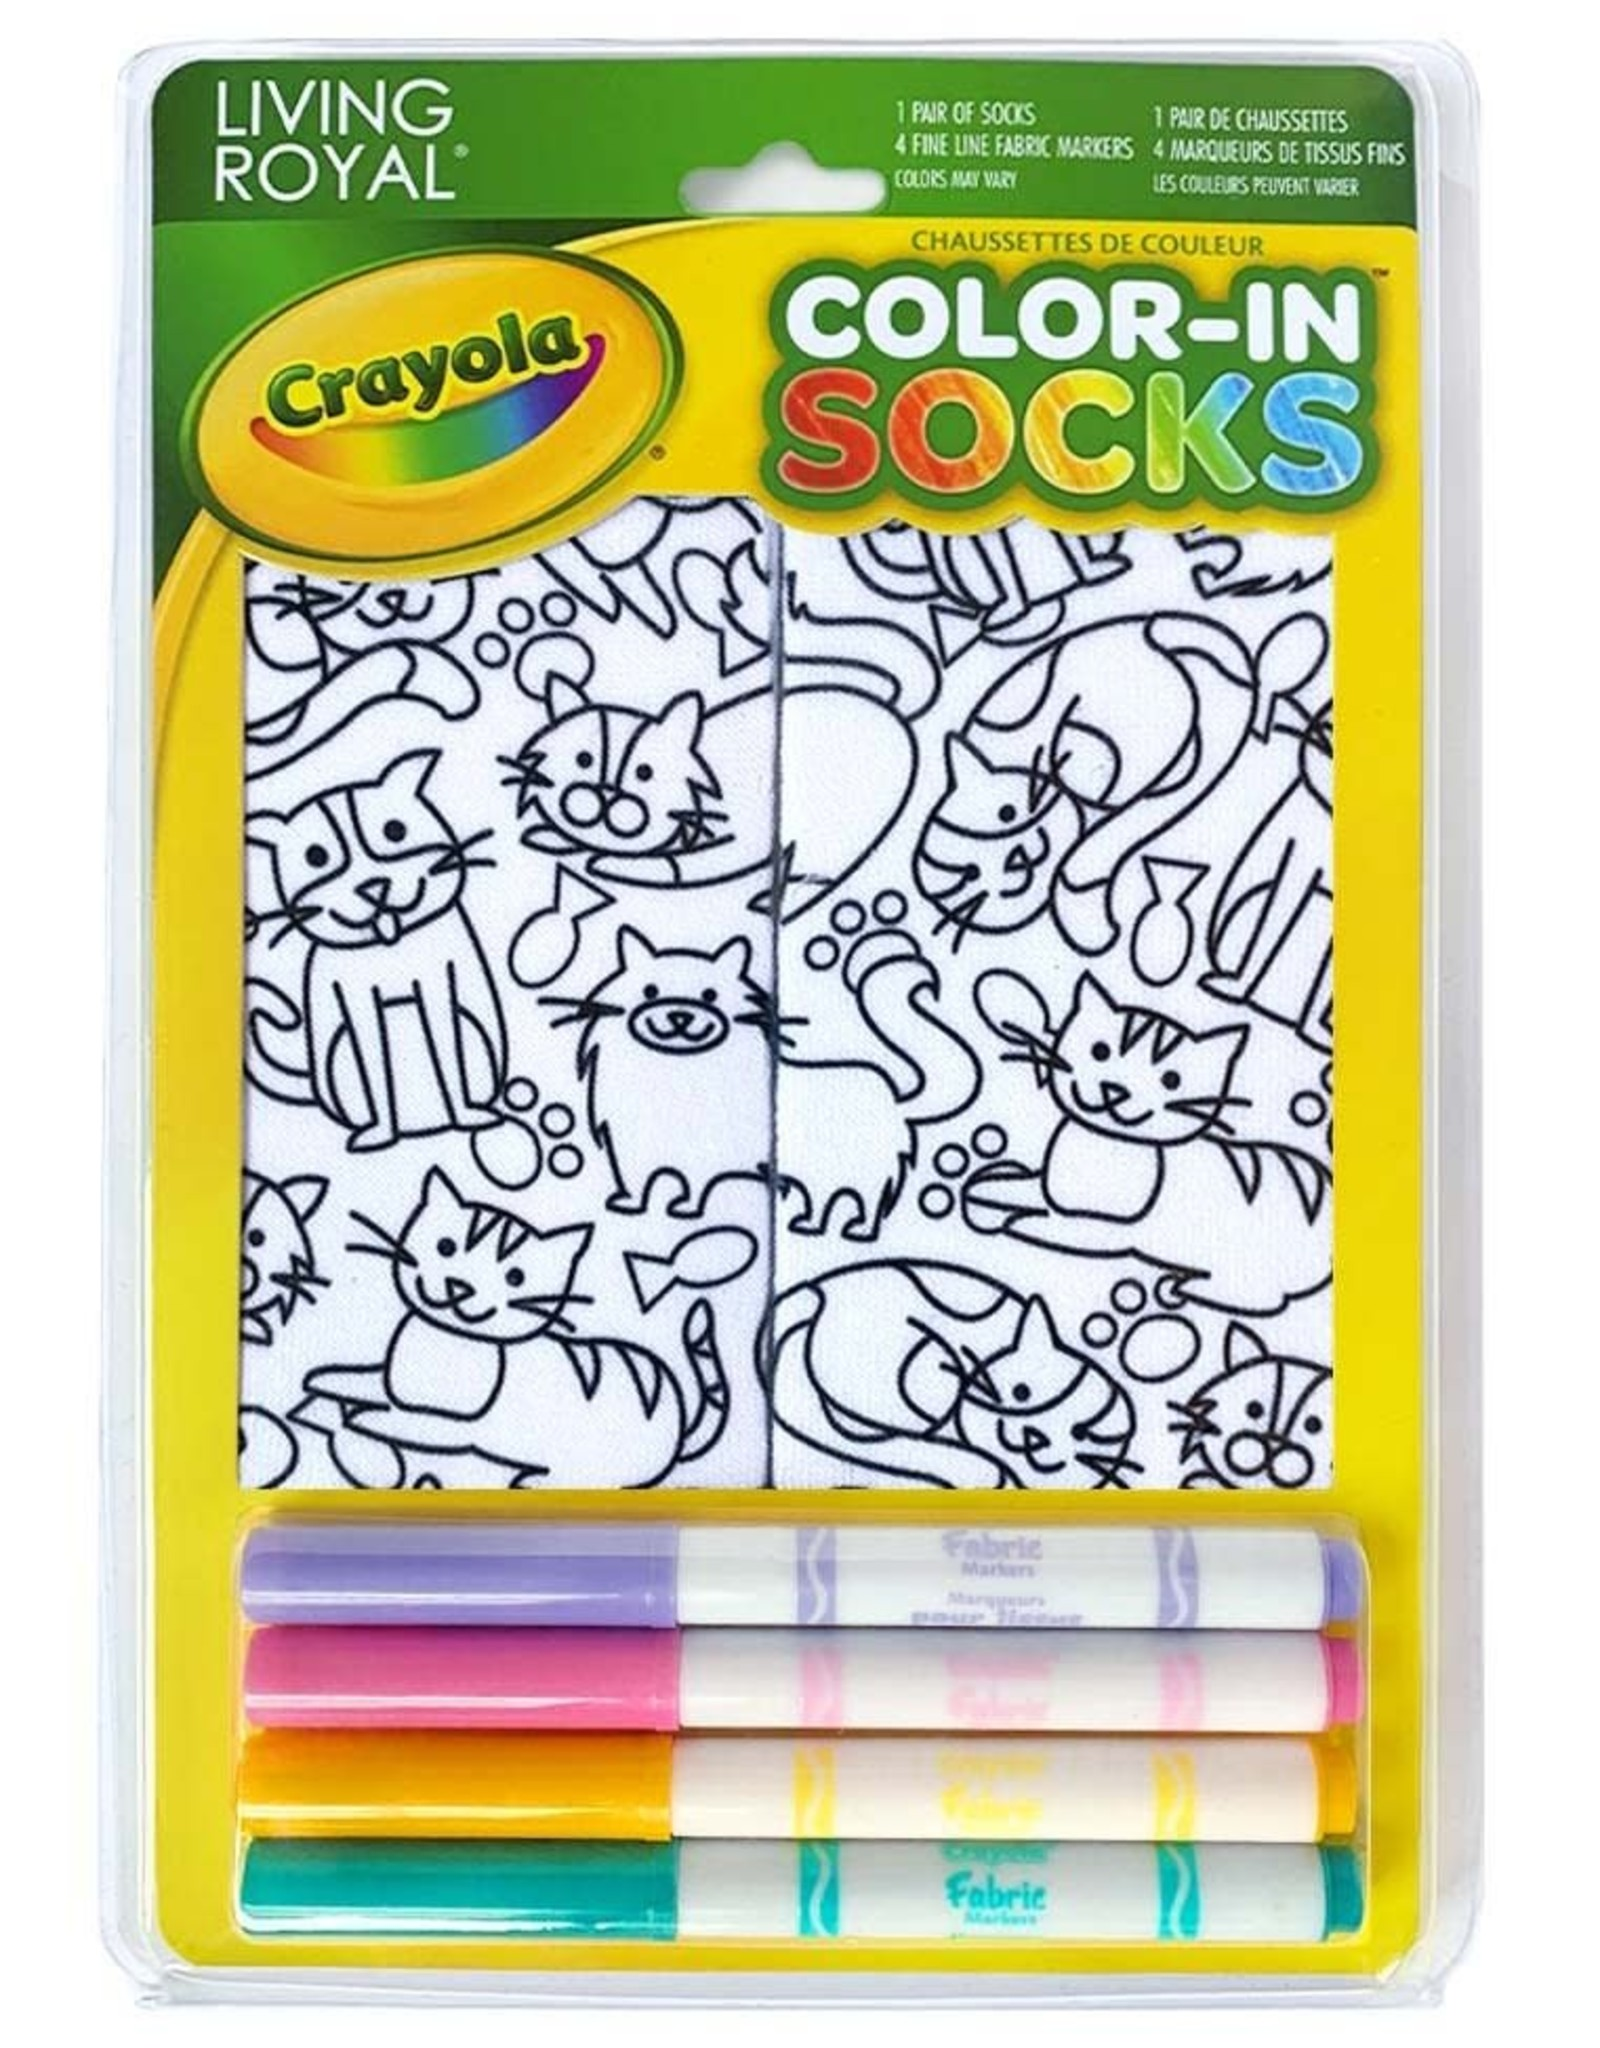 Crayola Color-In Socks: Kittens Galore